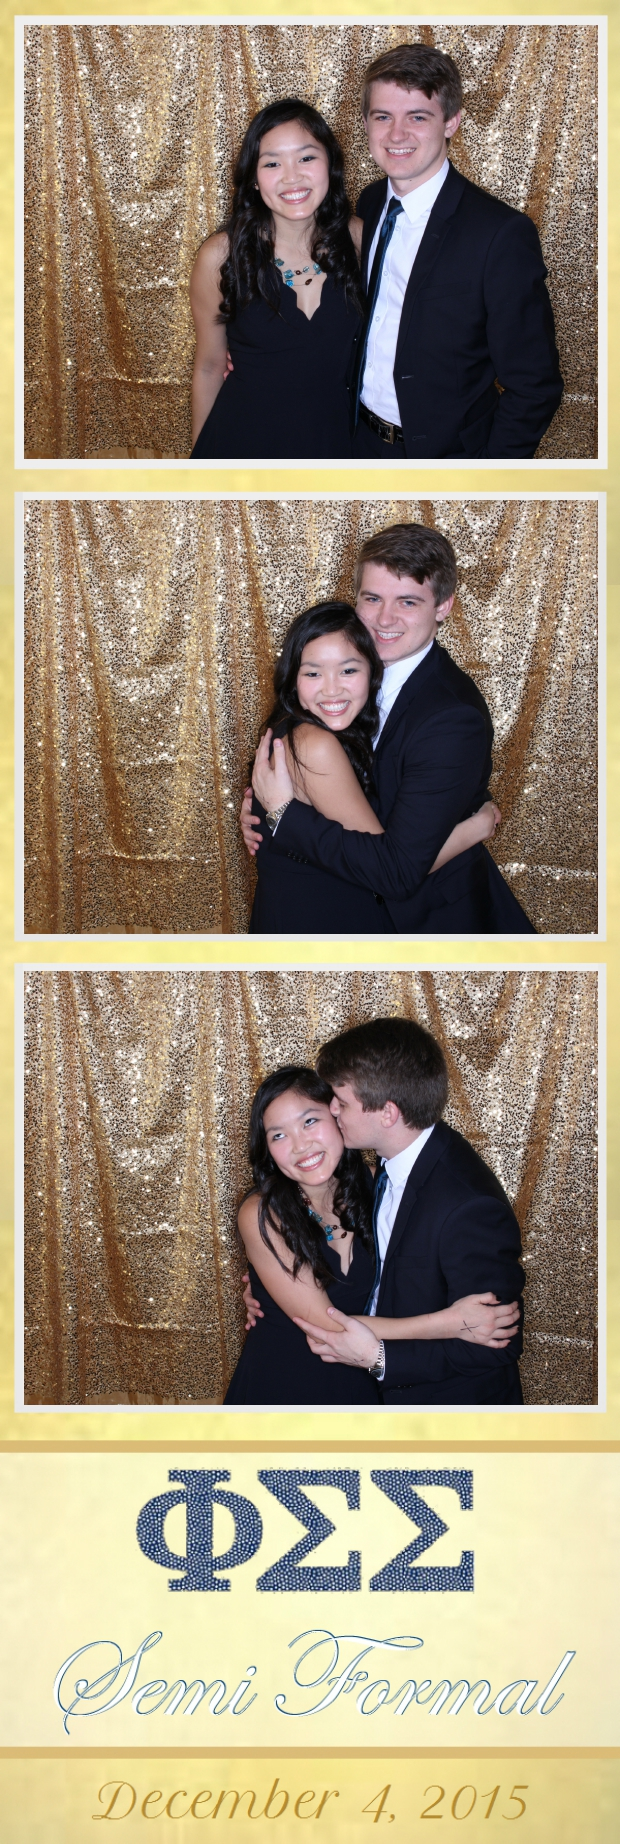 Guest House Events Photo Booth Phi Sigma Sigma Semi Formal (12).jpg